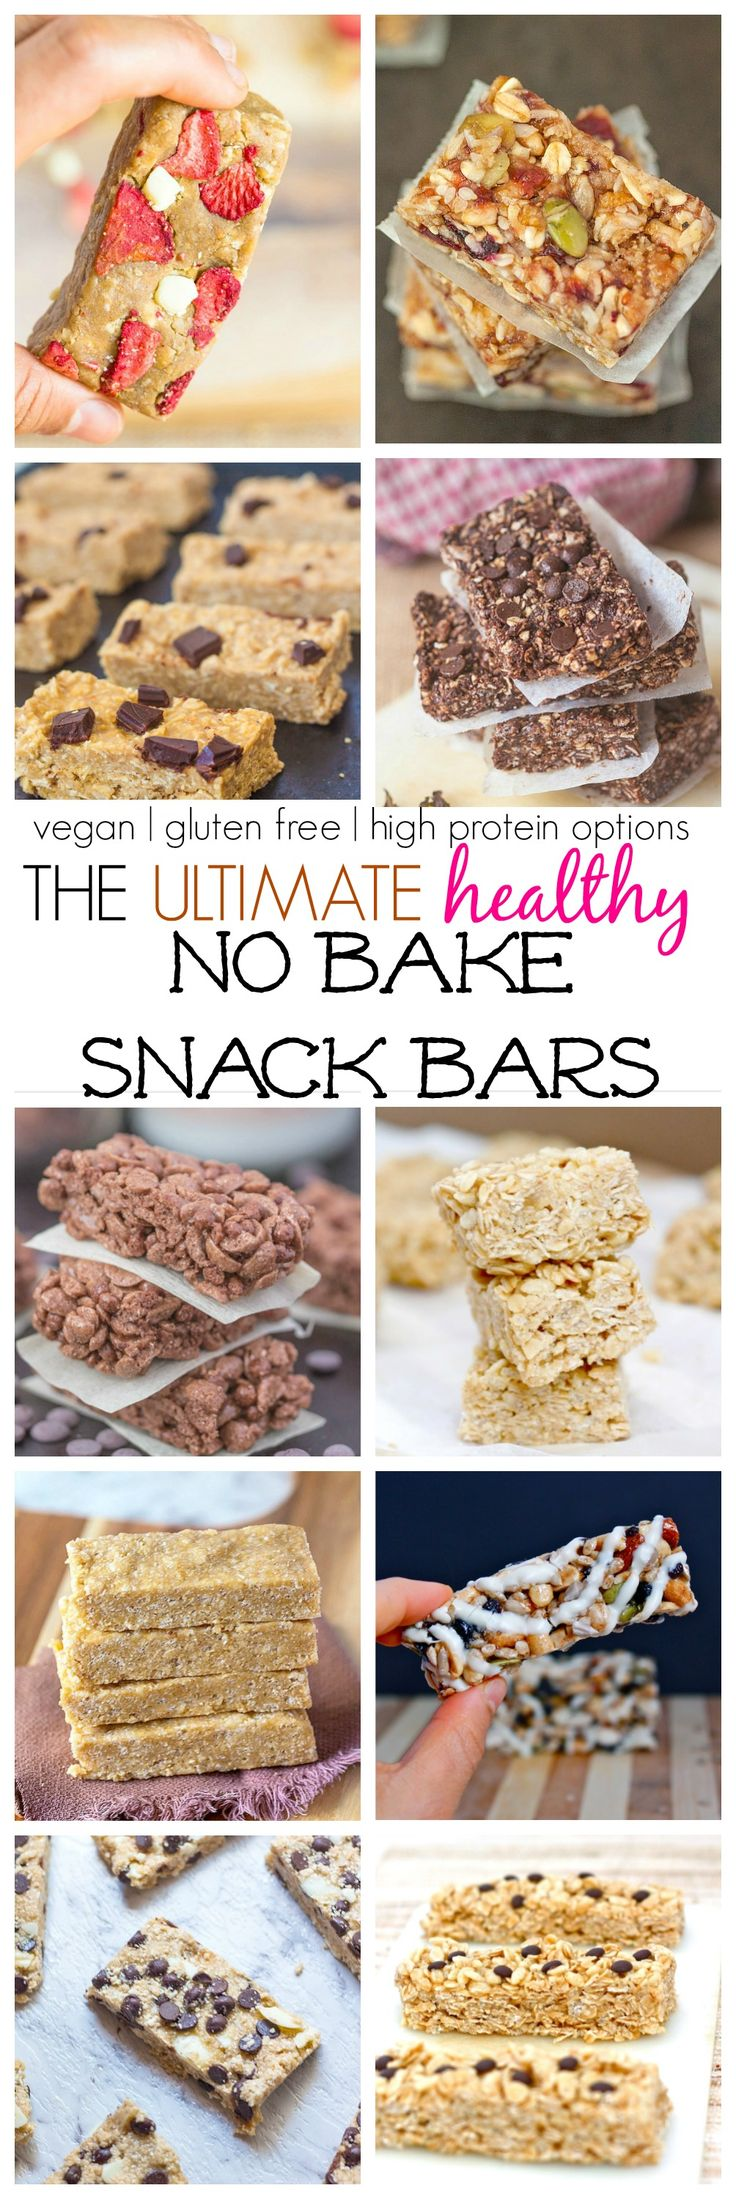 The Ultimate (Healthy) No Bake Snack/Granola/Protein Bars which ALL take less than 10 minutes to whip up! {vegan, gluten free, high protein options!}